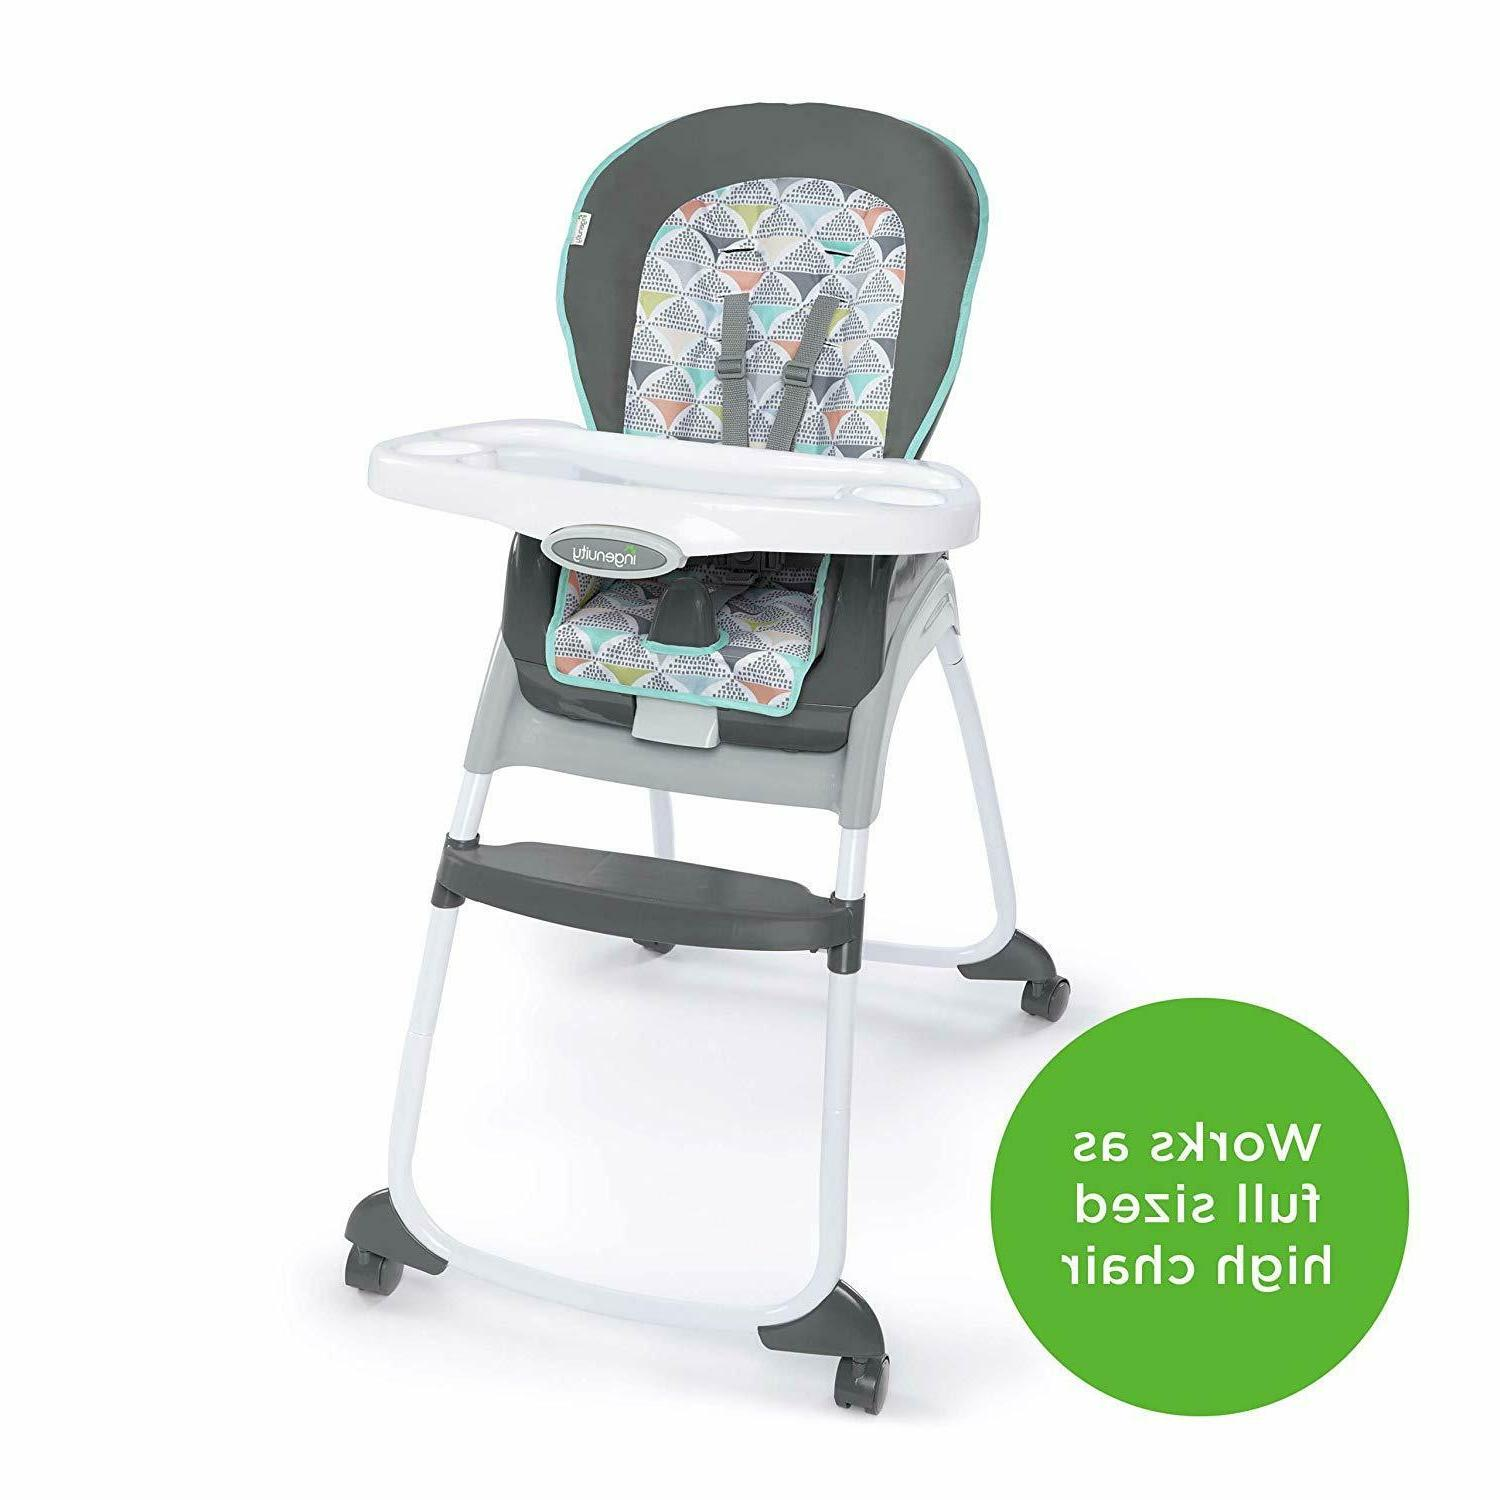 Ingenuity Chair - High Chair, Booster